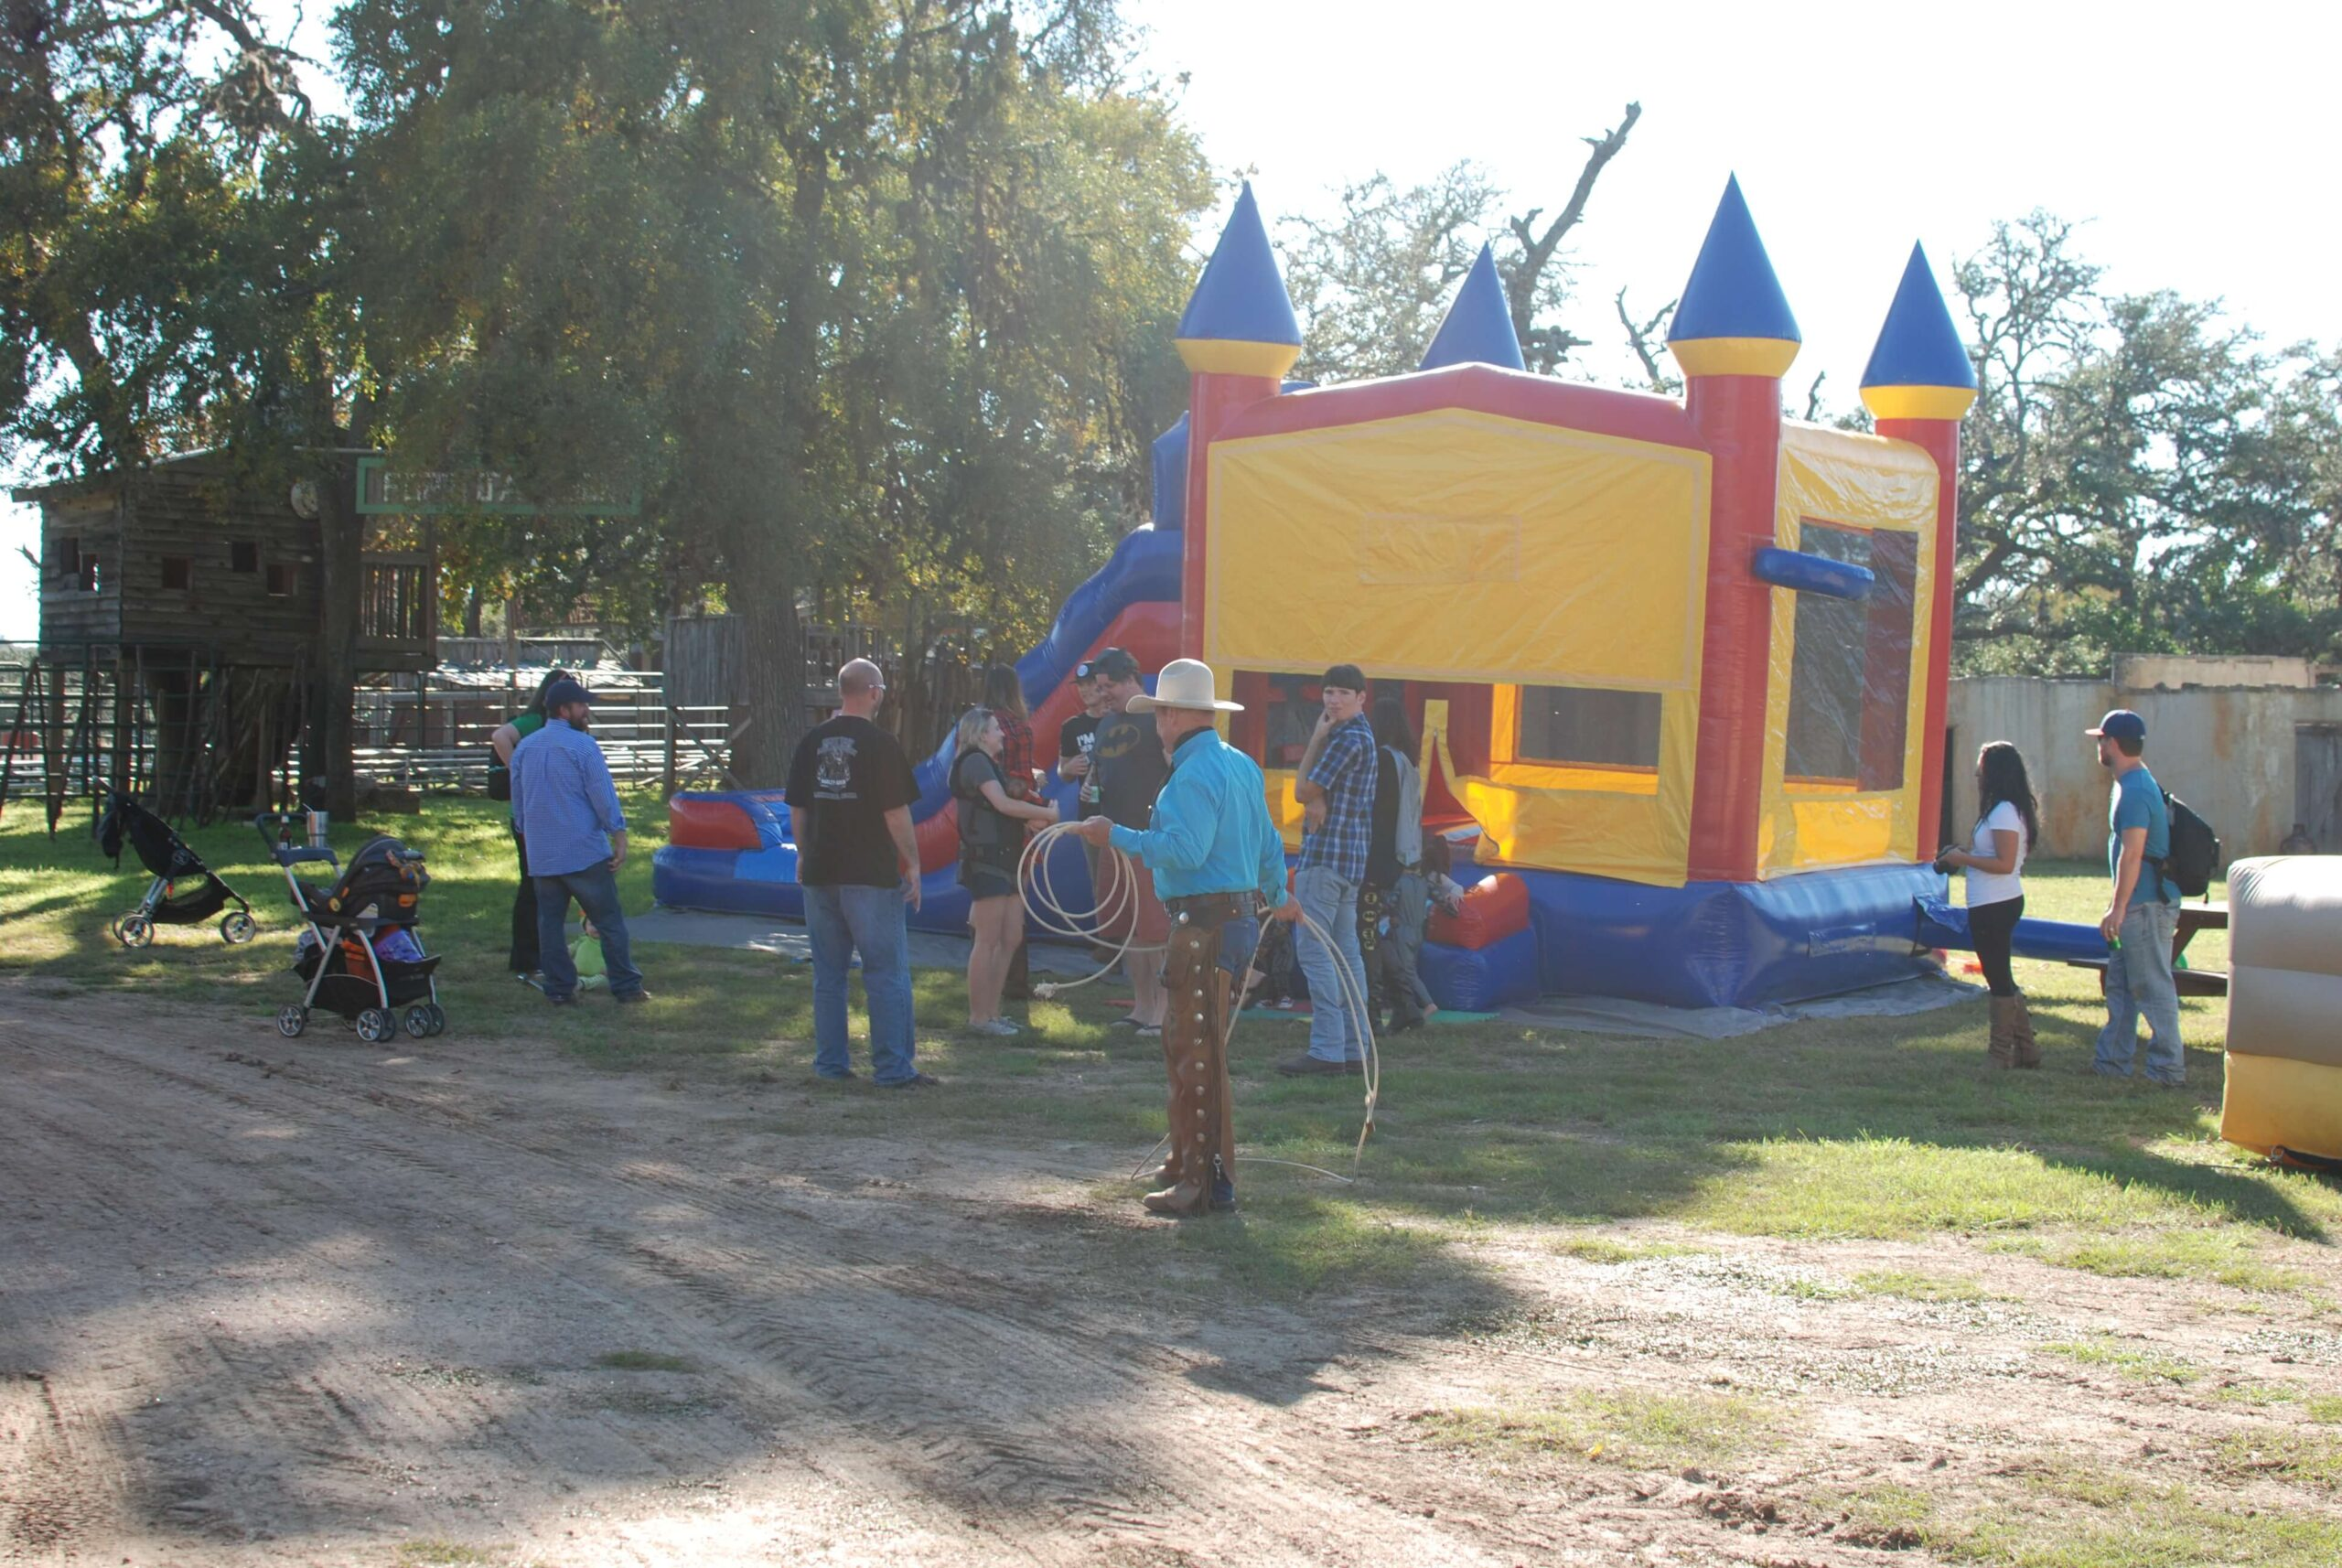 Company Picnics at Enchanted Springs Ranch- Bounce Houses and Trick Roping Shows